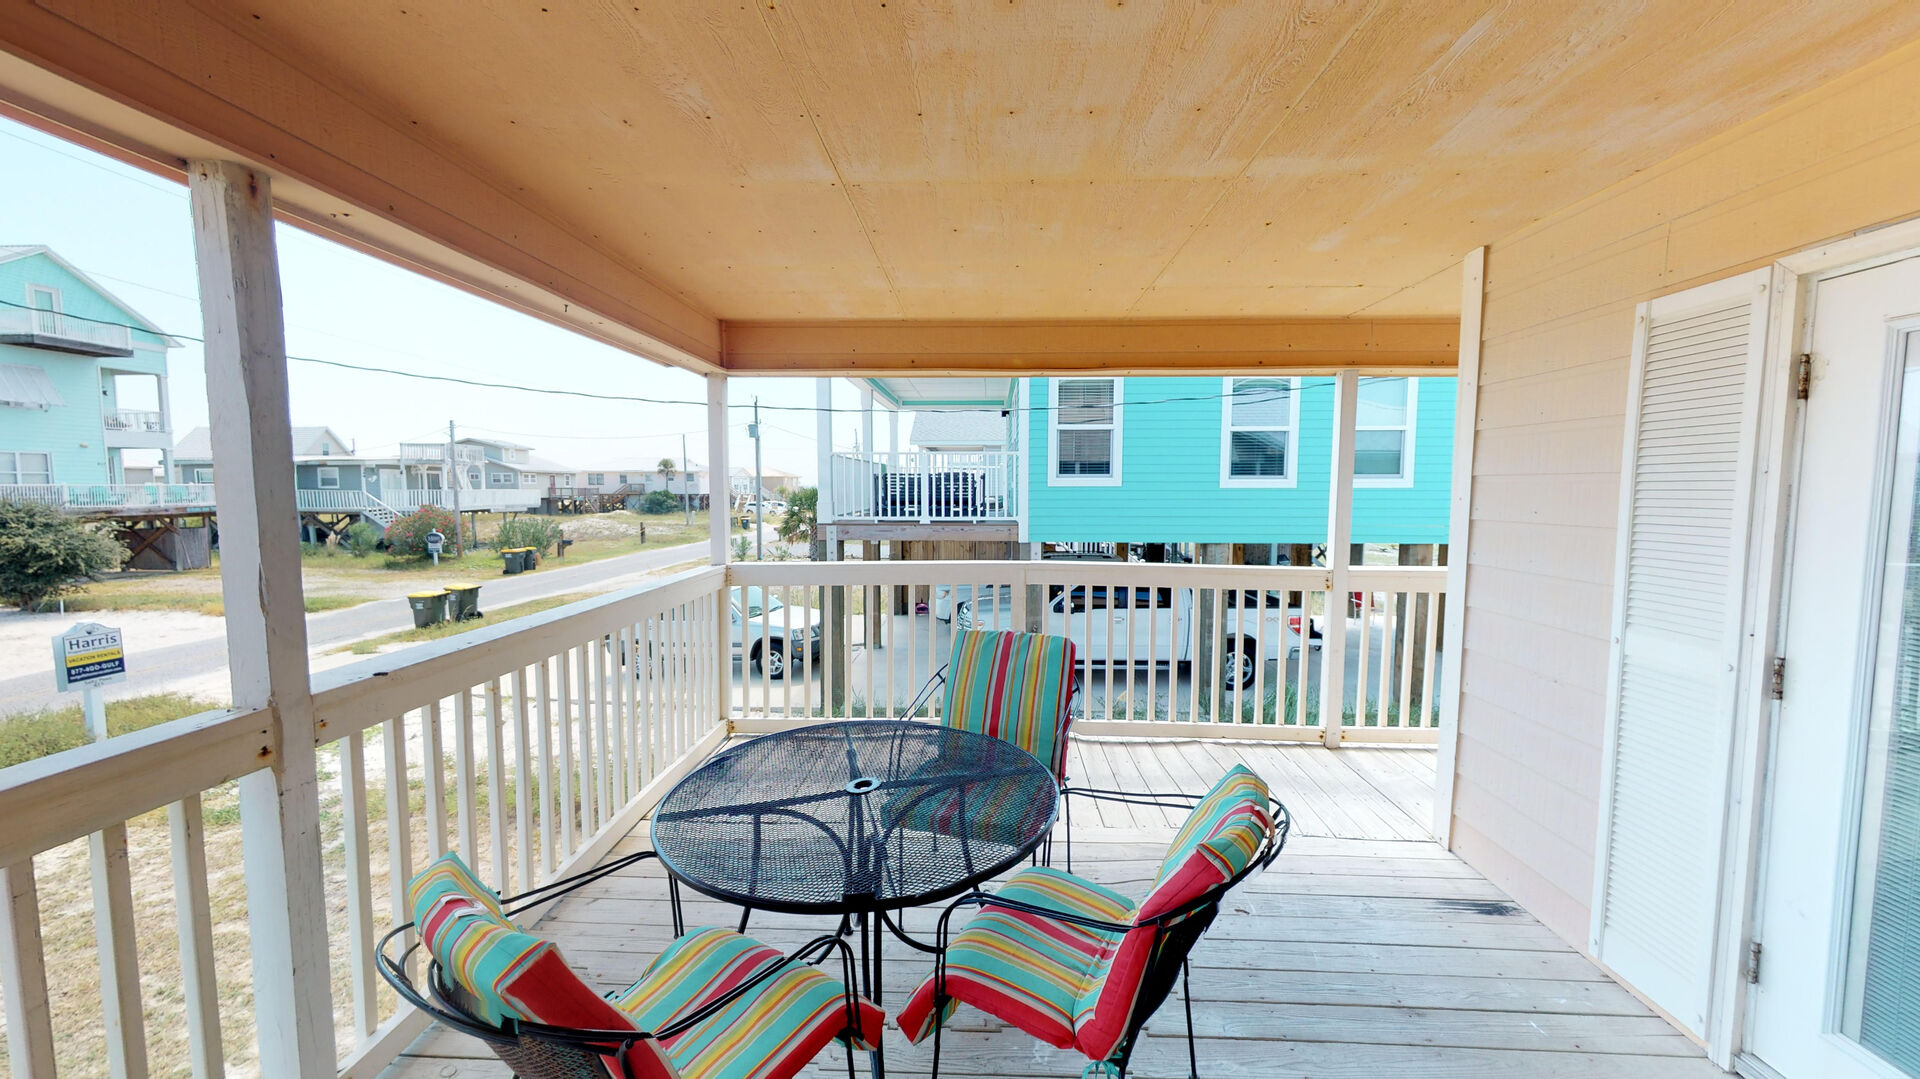 Patio Table and Chairs in the Covered Deck.